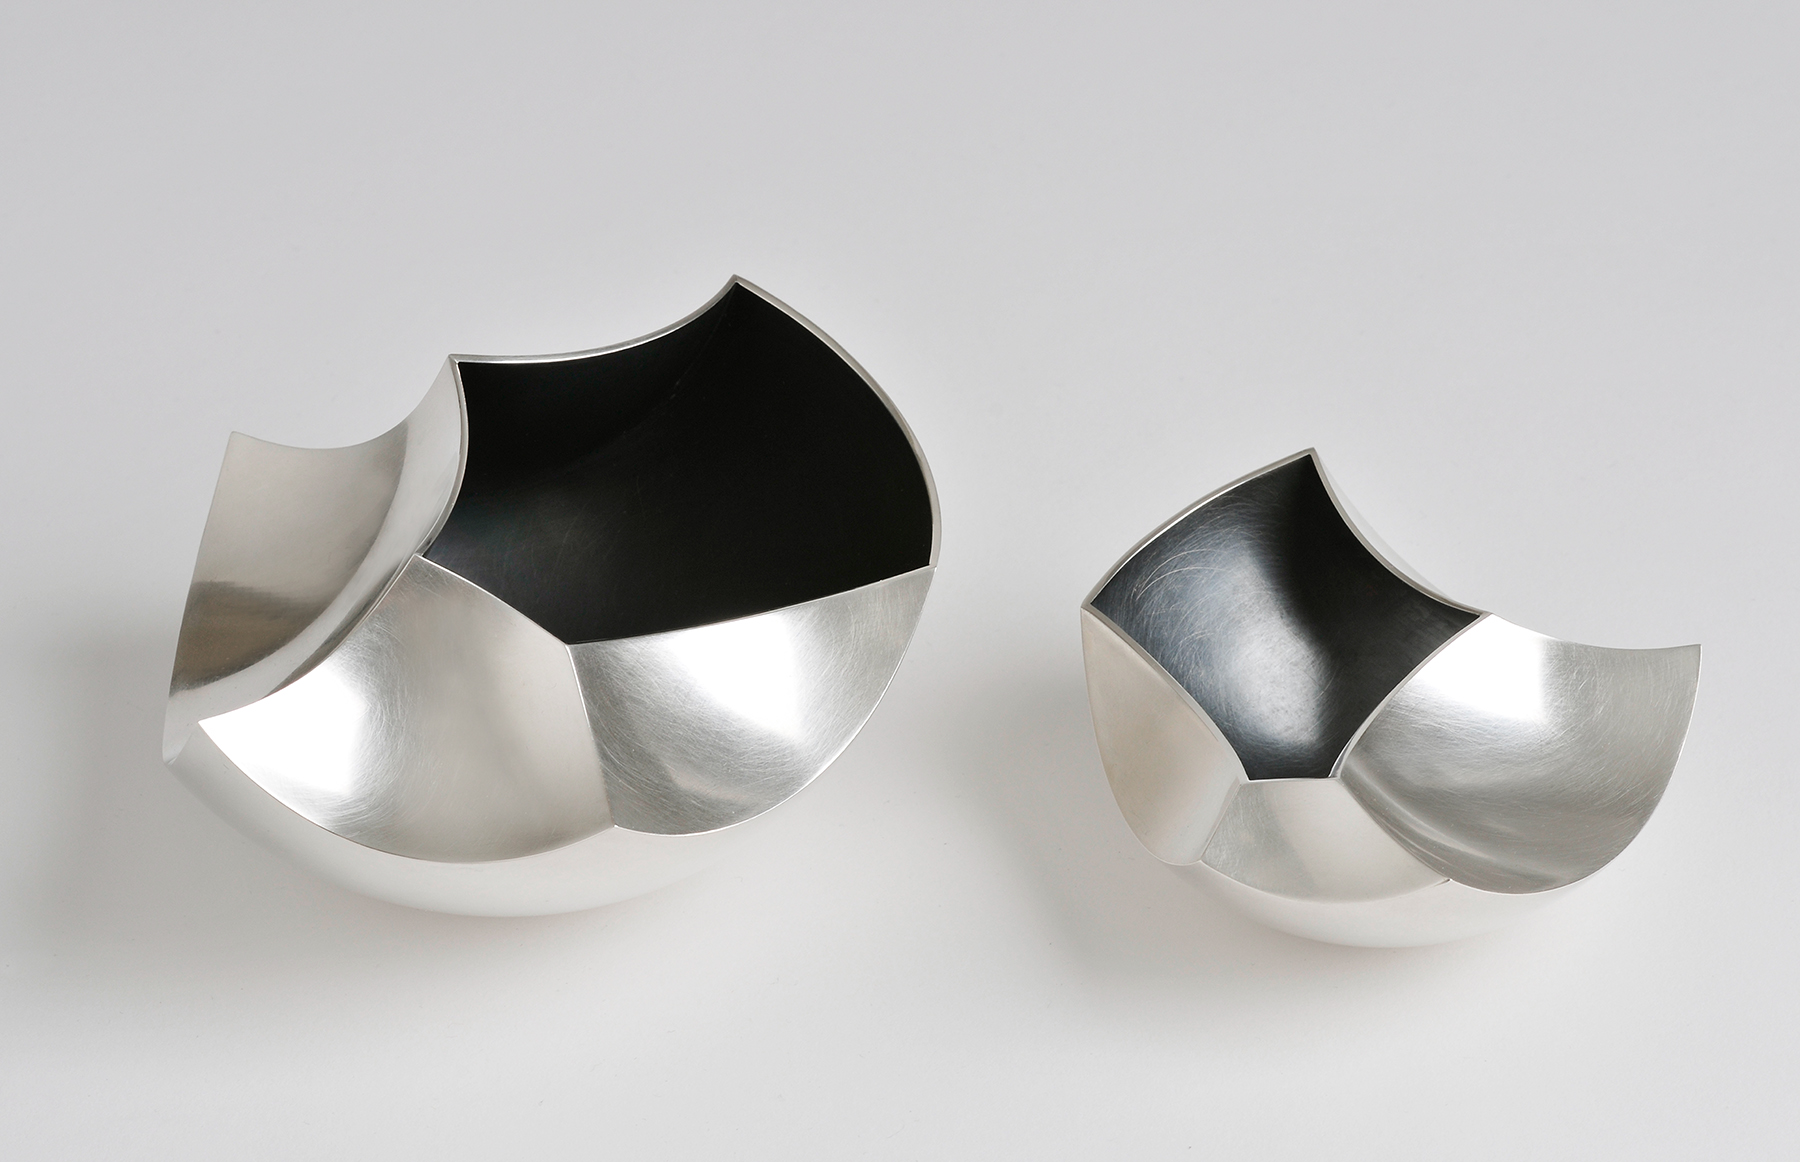 A pair of 'Introverted Bowls' in sterling silver